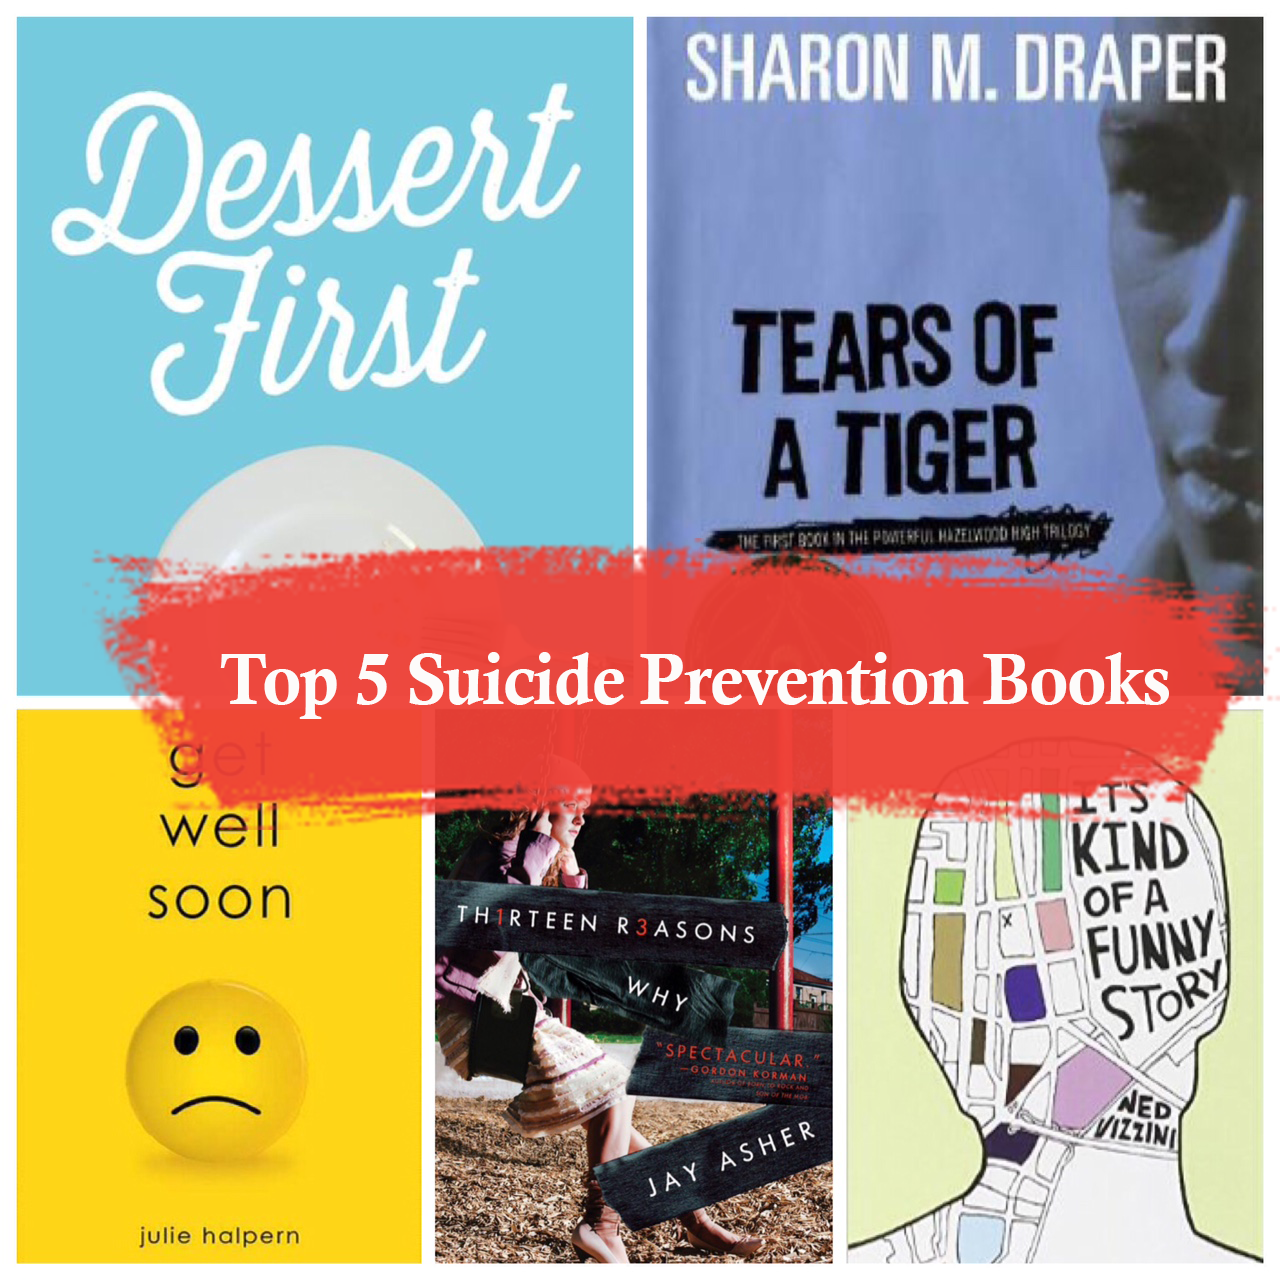 a review summary of tears of a tiger Tears of a tiger (sharon m draper) at booksamillioncom  write a review  overview - after a car accident kills robert, andy's best friend and teammate on  the.